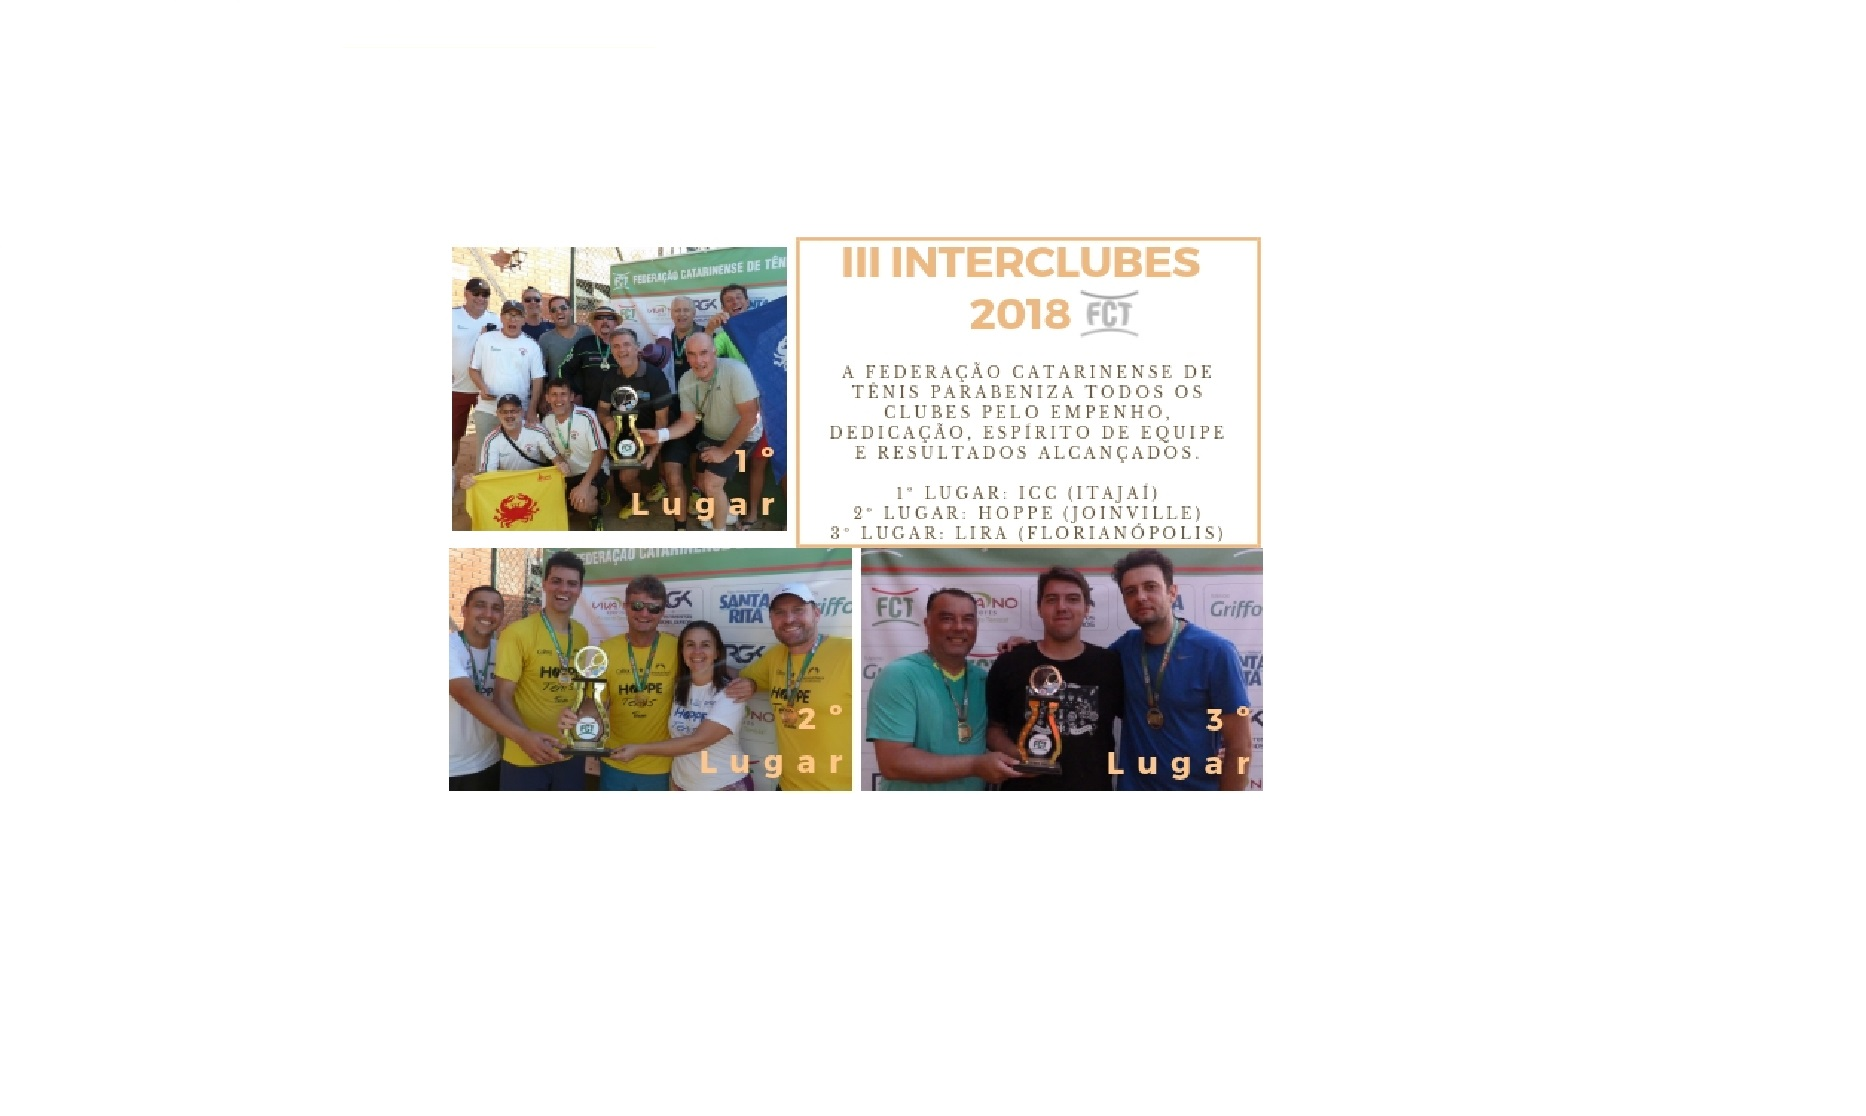 III INTERCLUBES 2018